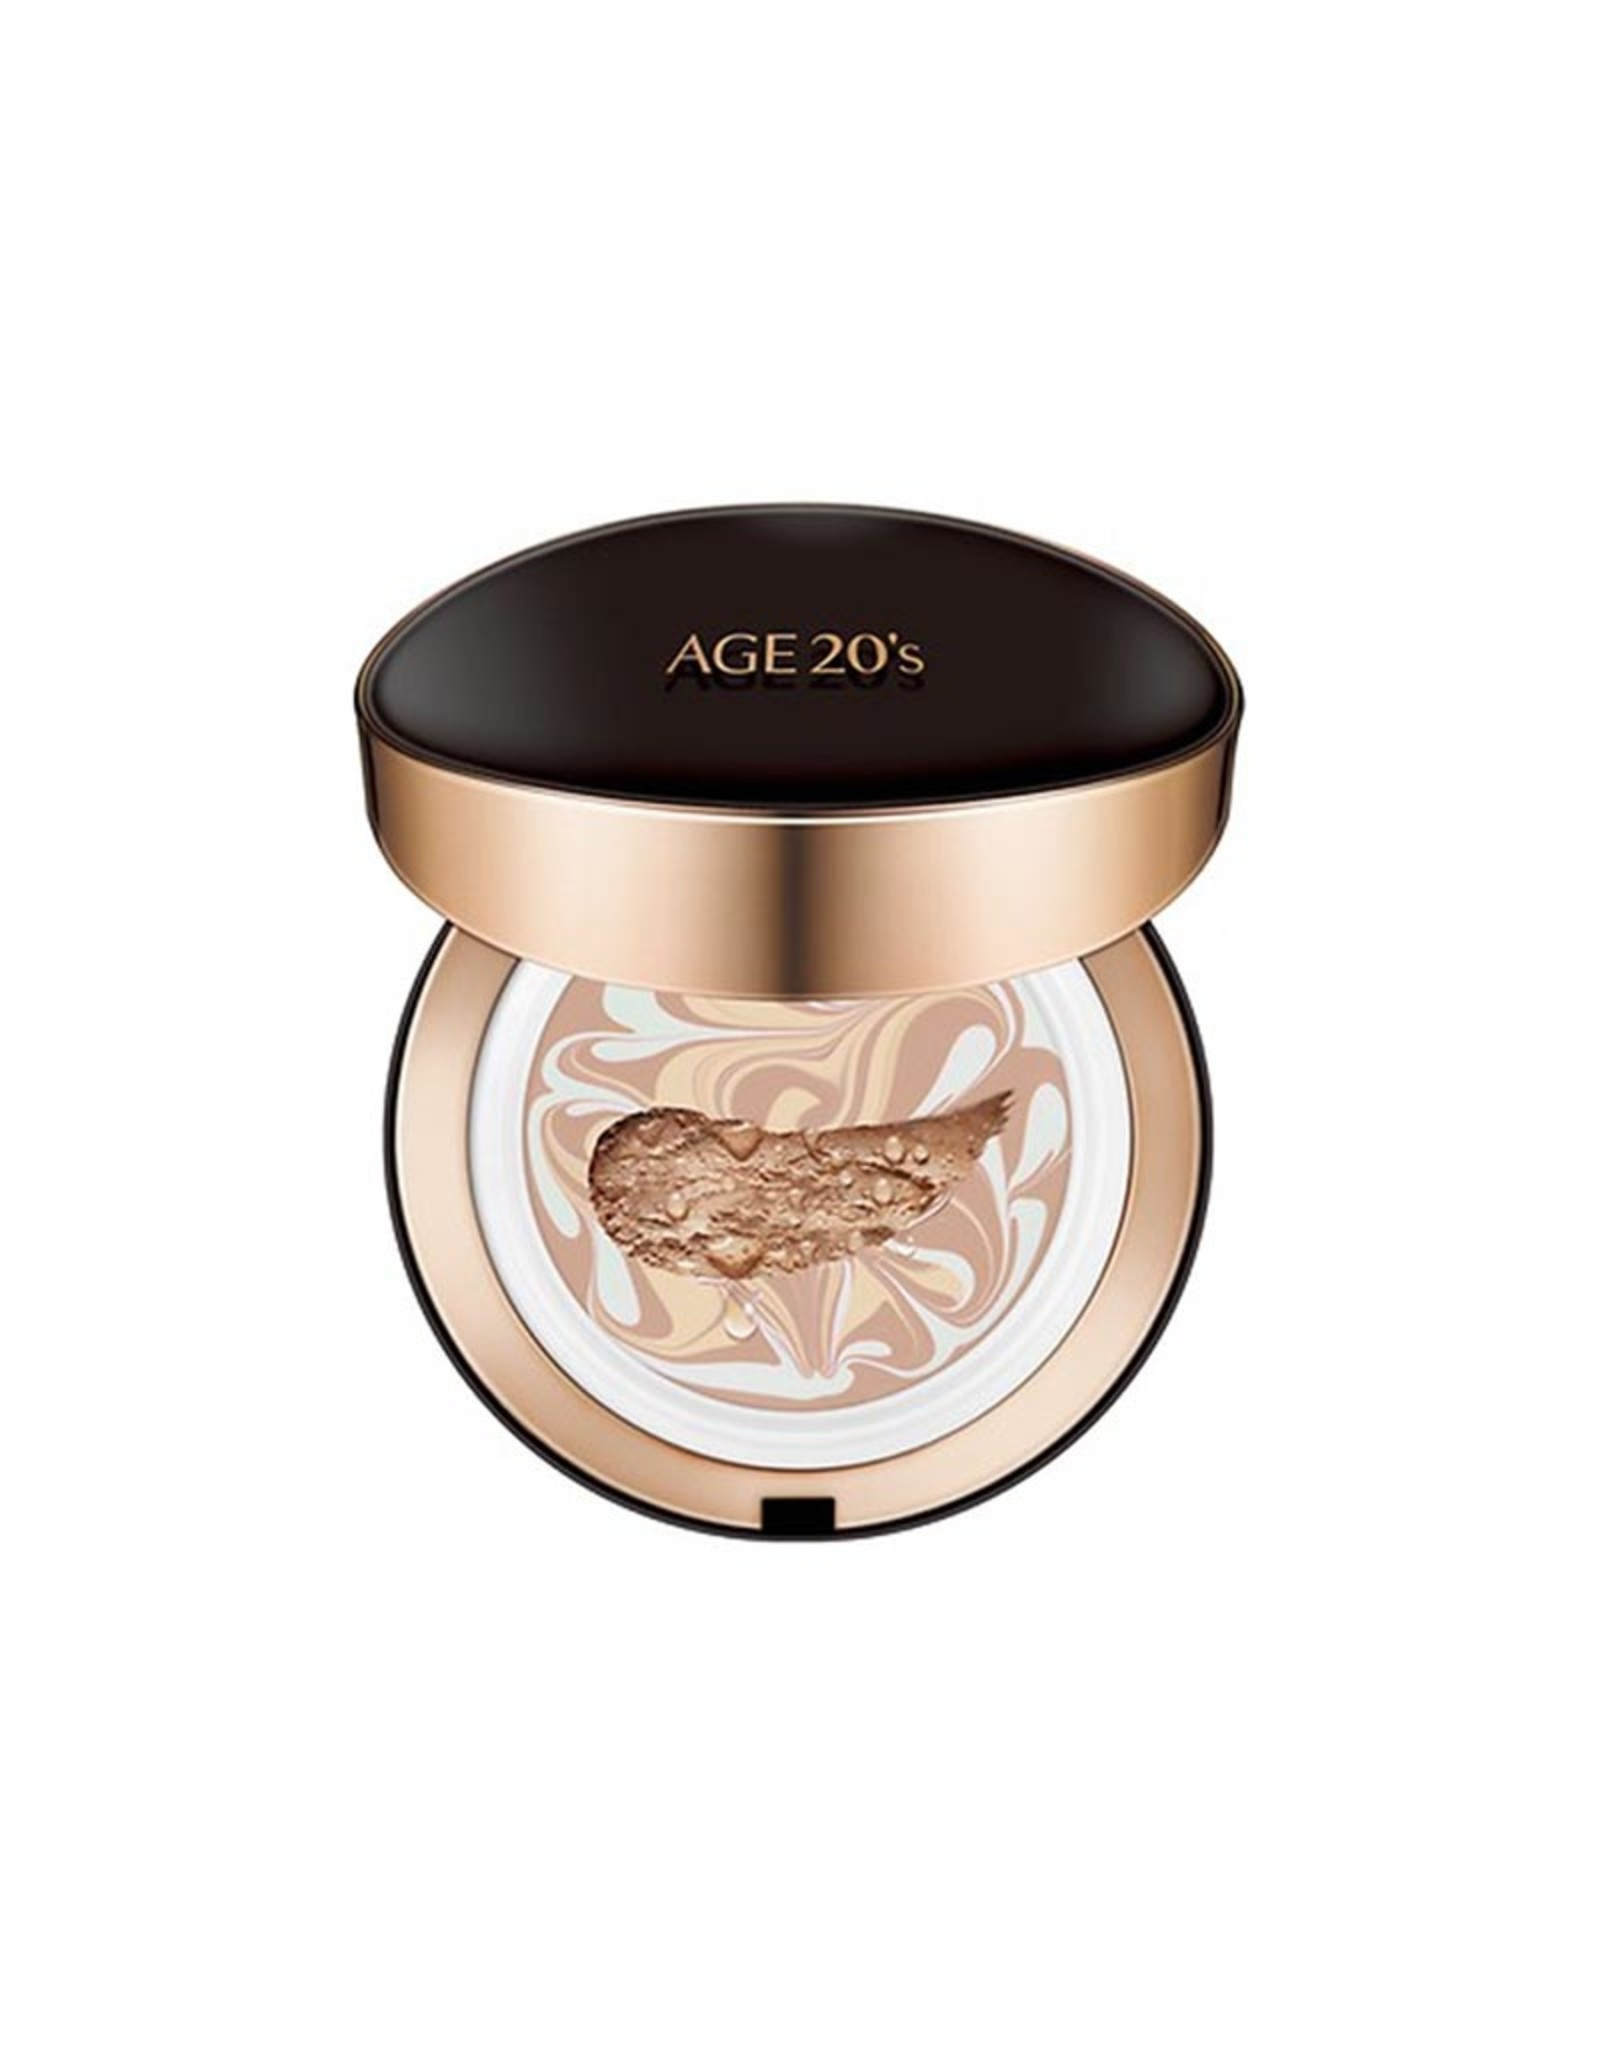 Age 20's Age 20's Signature Essence Cover Pact Intense Cover